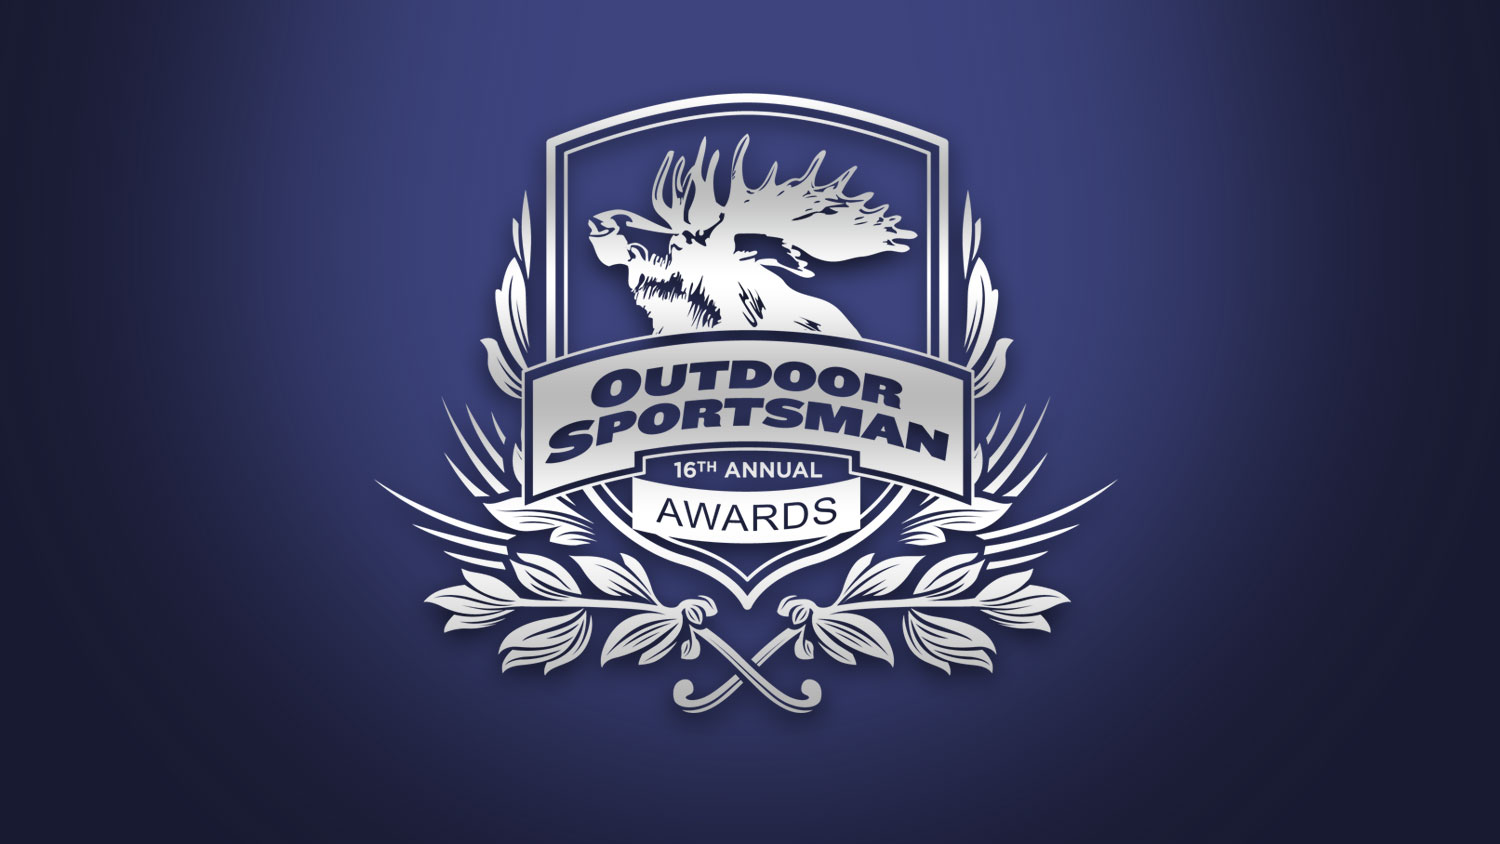 Nominees Announced For The 16th Annual Outdoor Sportsman Awards